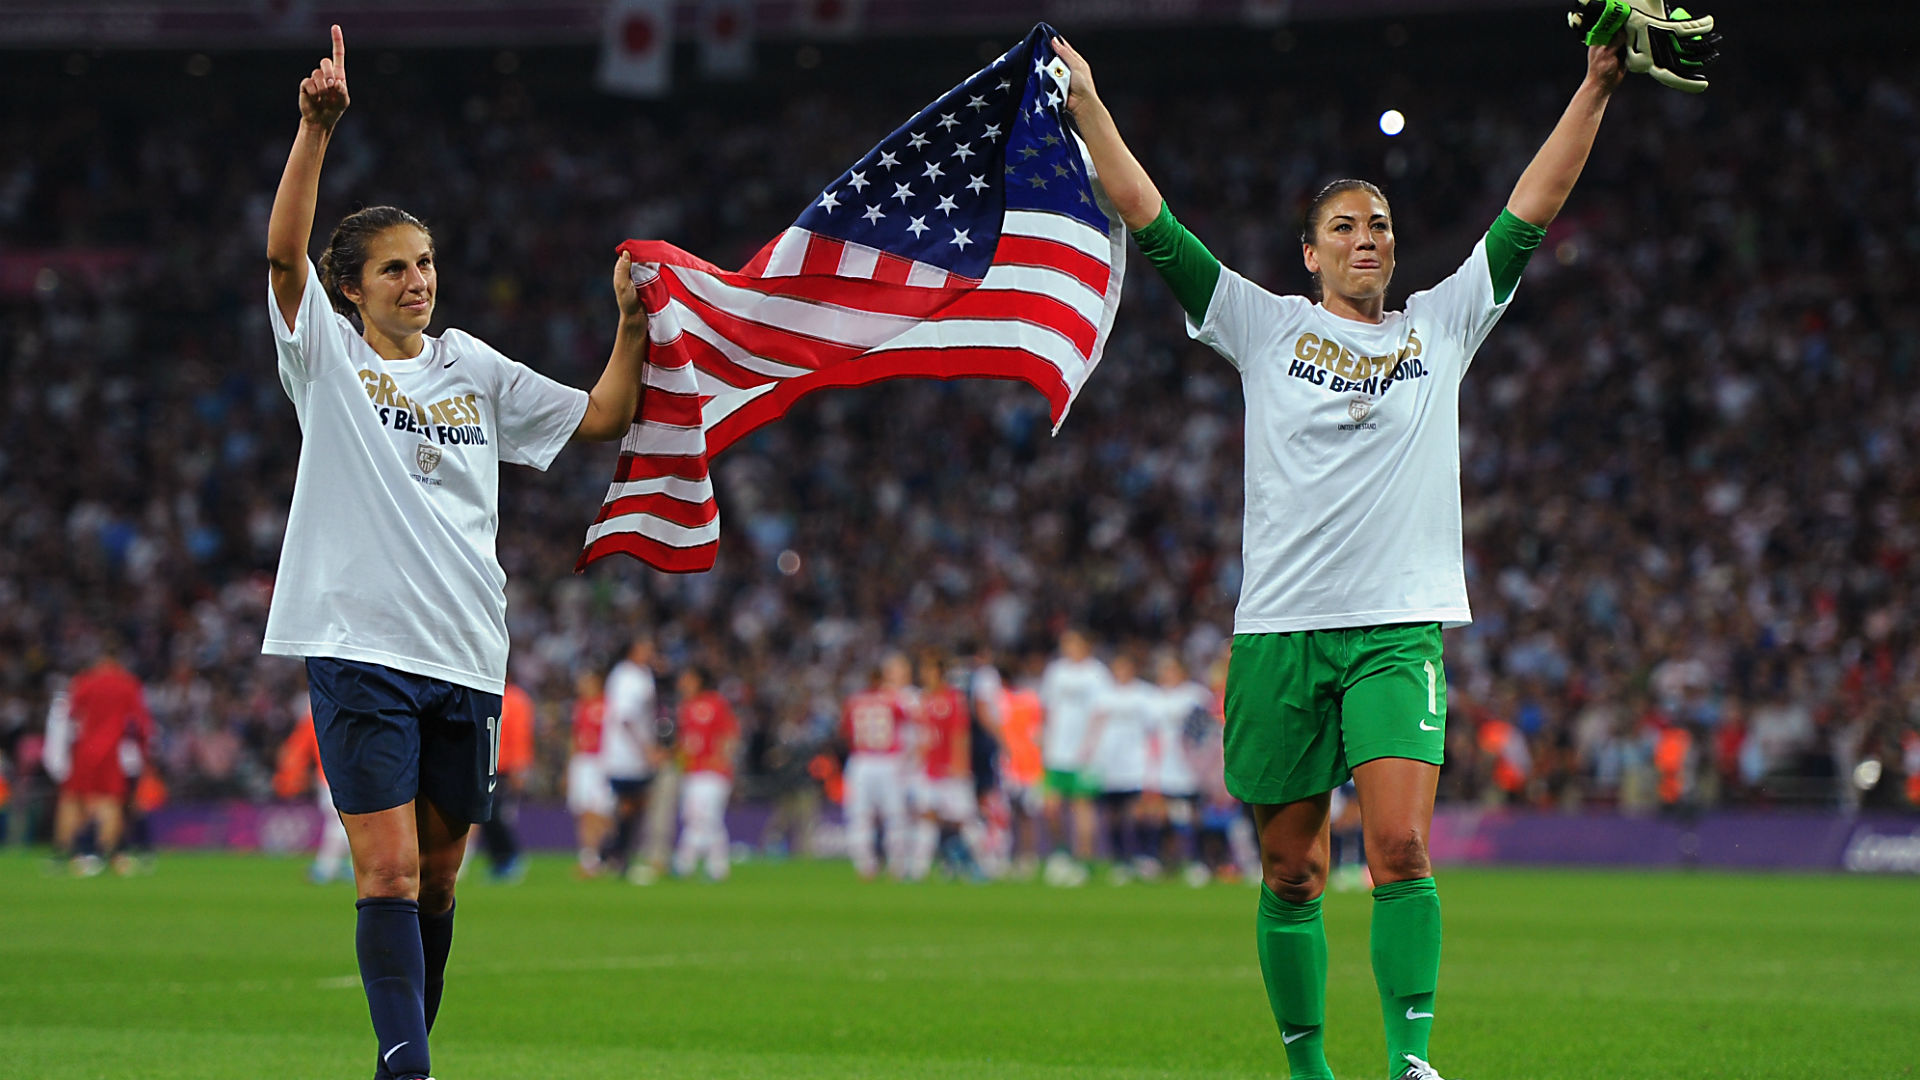 Women's World Cup: USA looks to end 16-year drought in Japan rematch